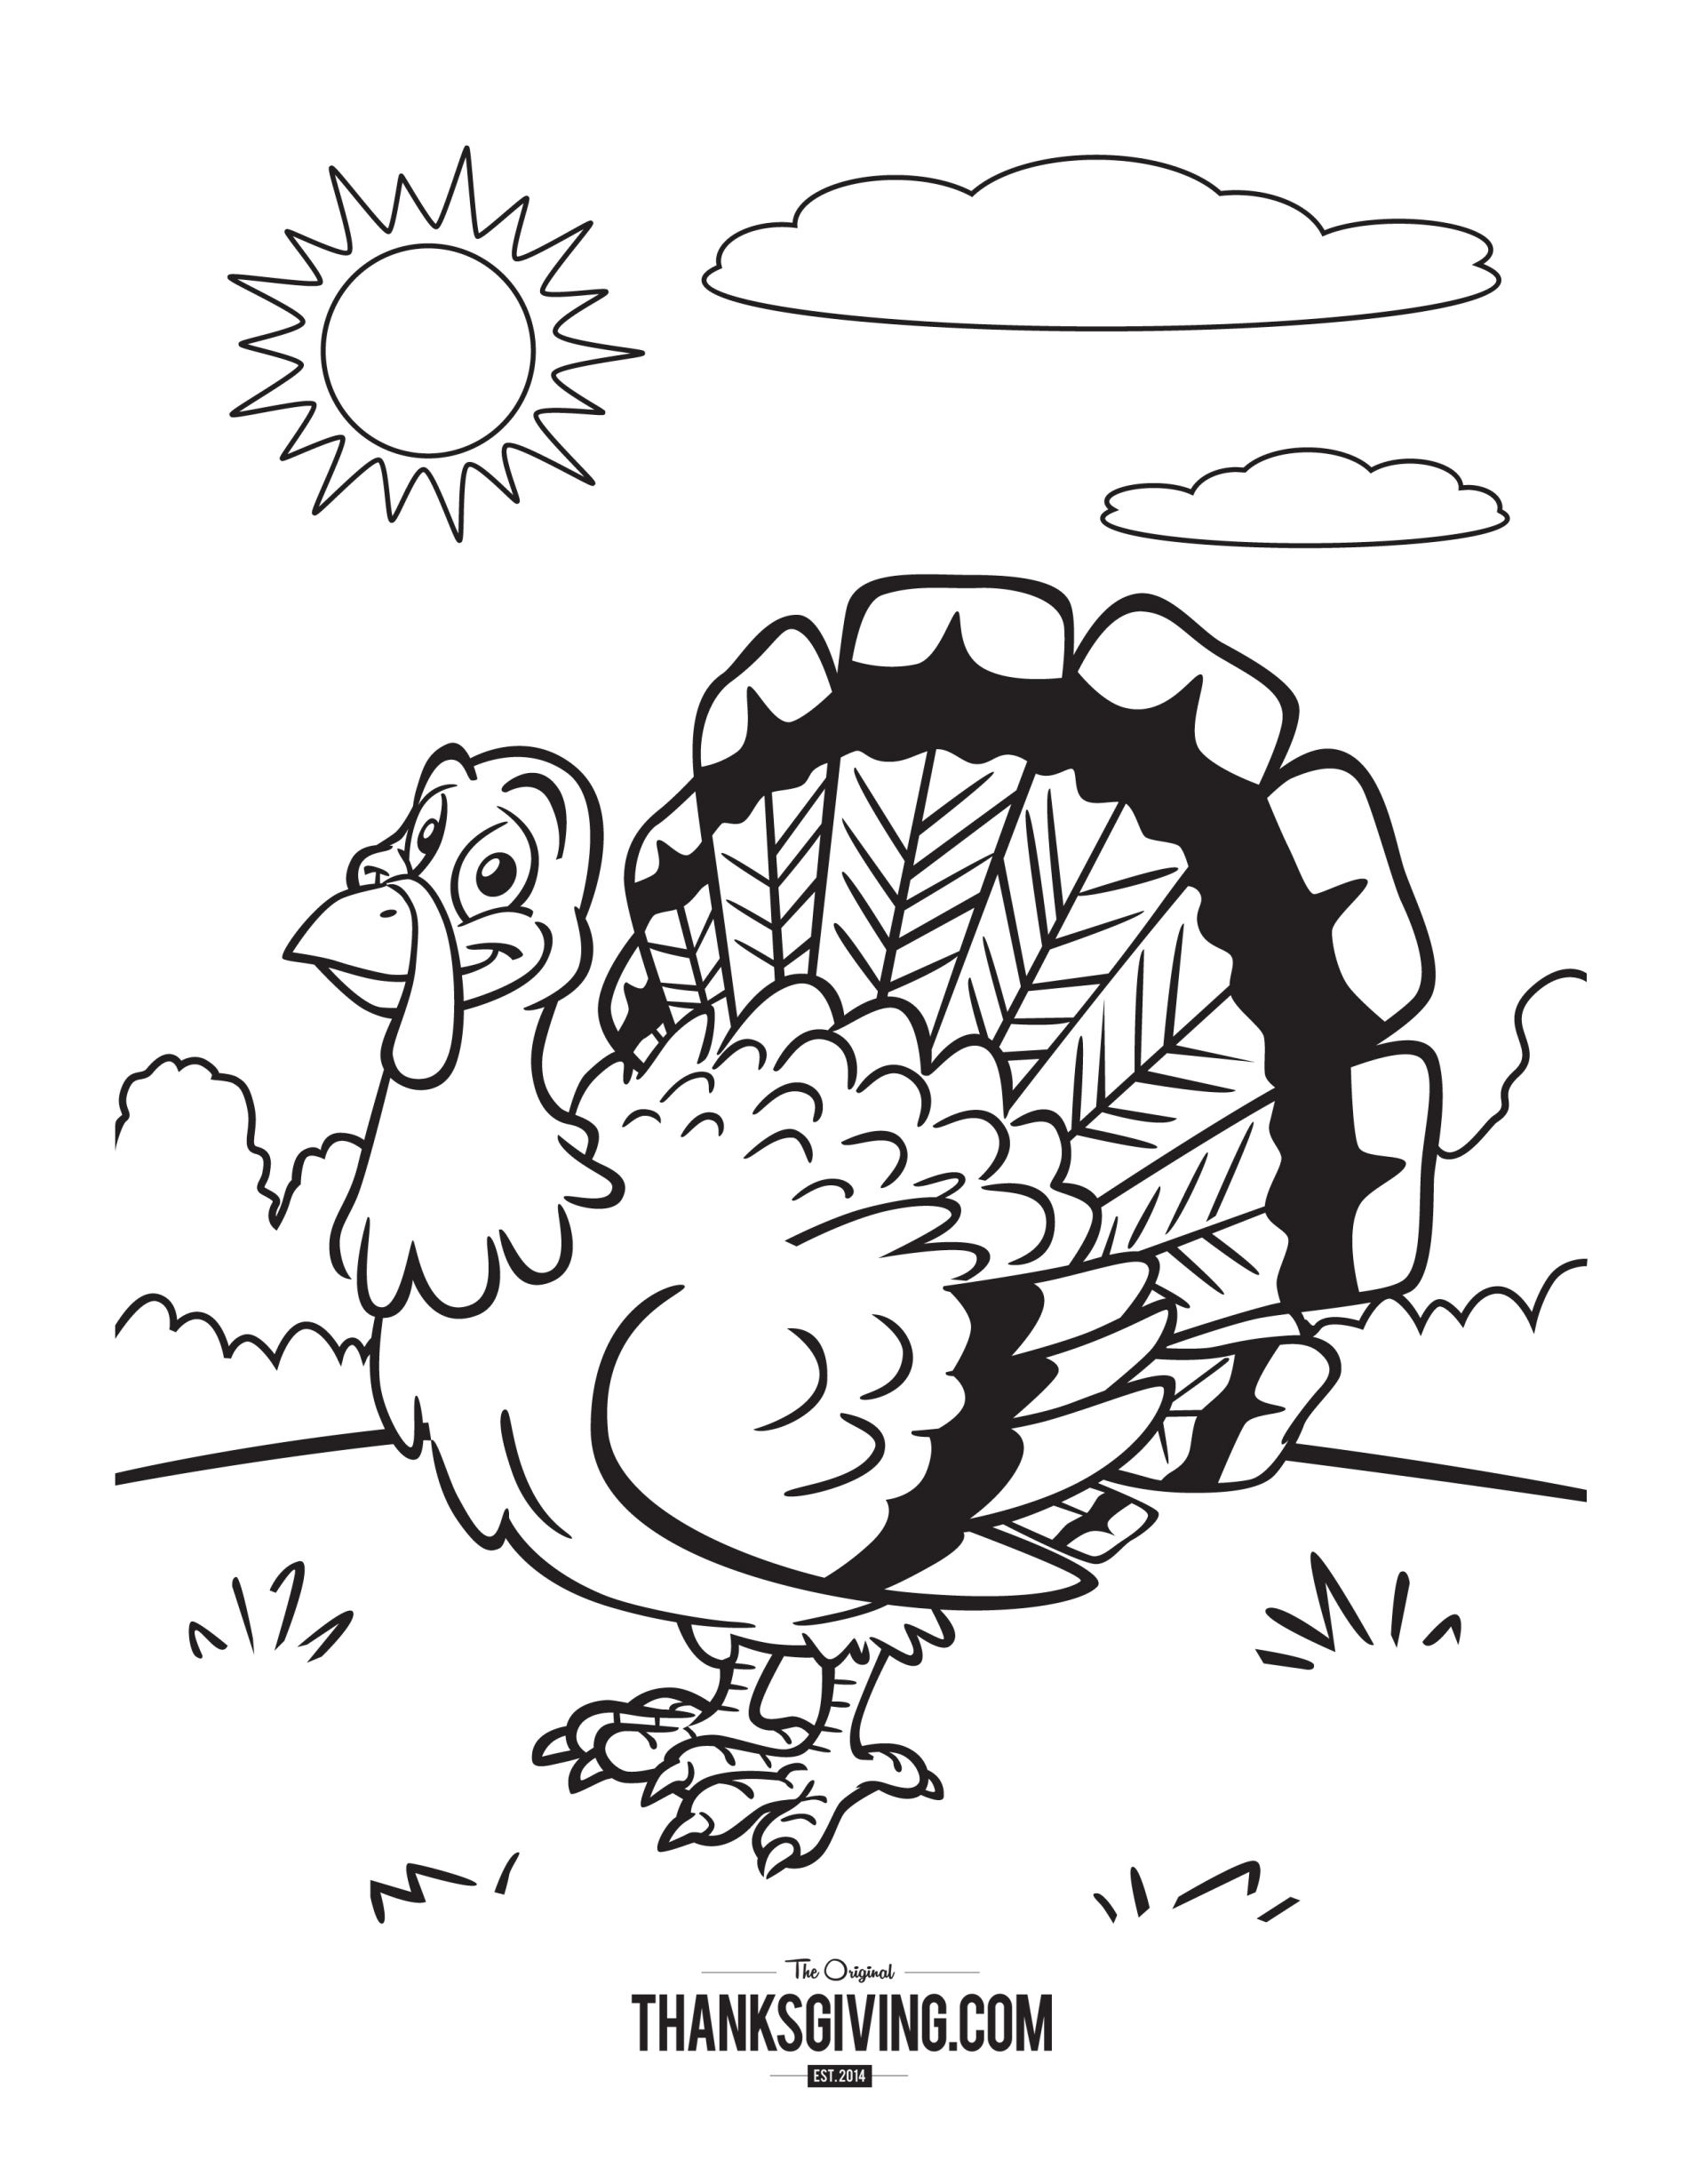 Coloring Pages : Thanksgivinging Book Pages For Kids Sunny Turkey - Free Printable Thanksgiving Books